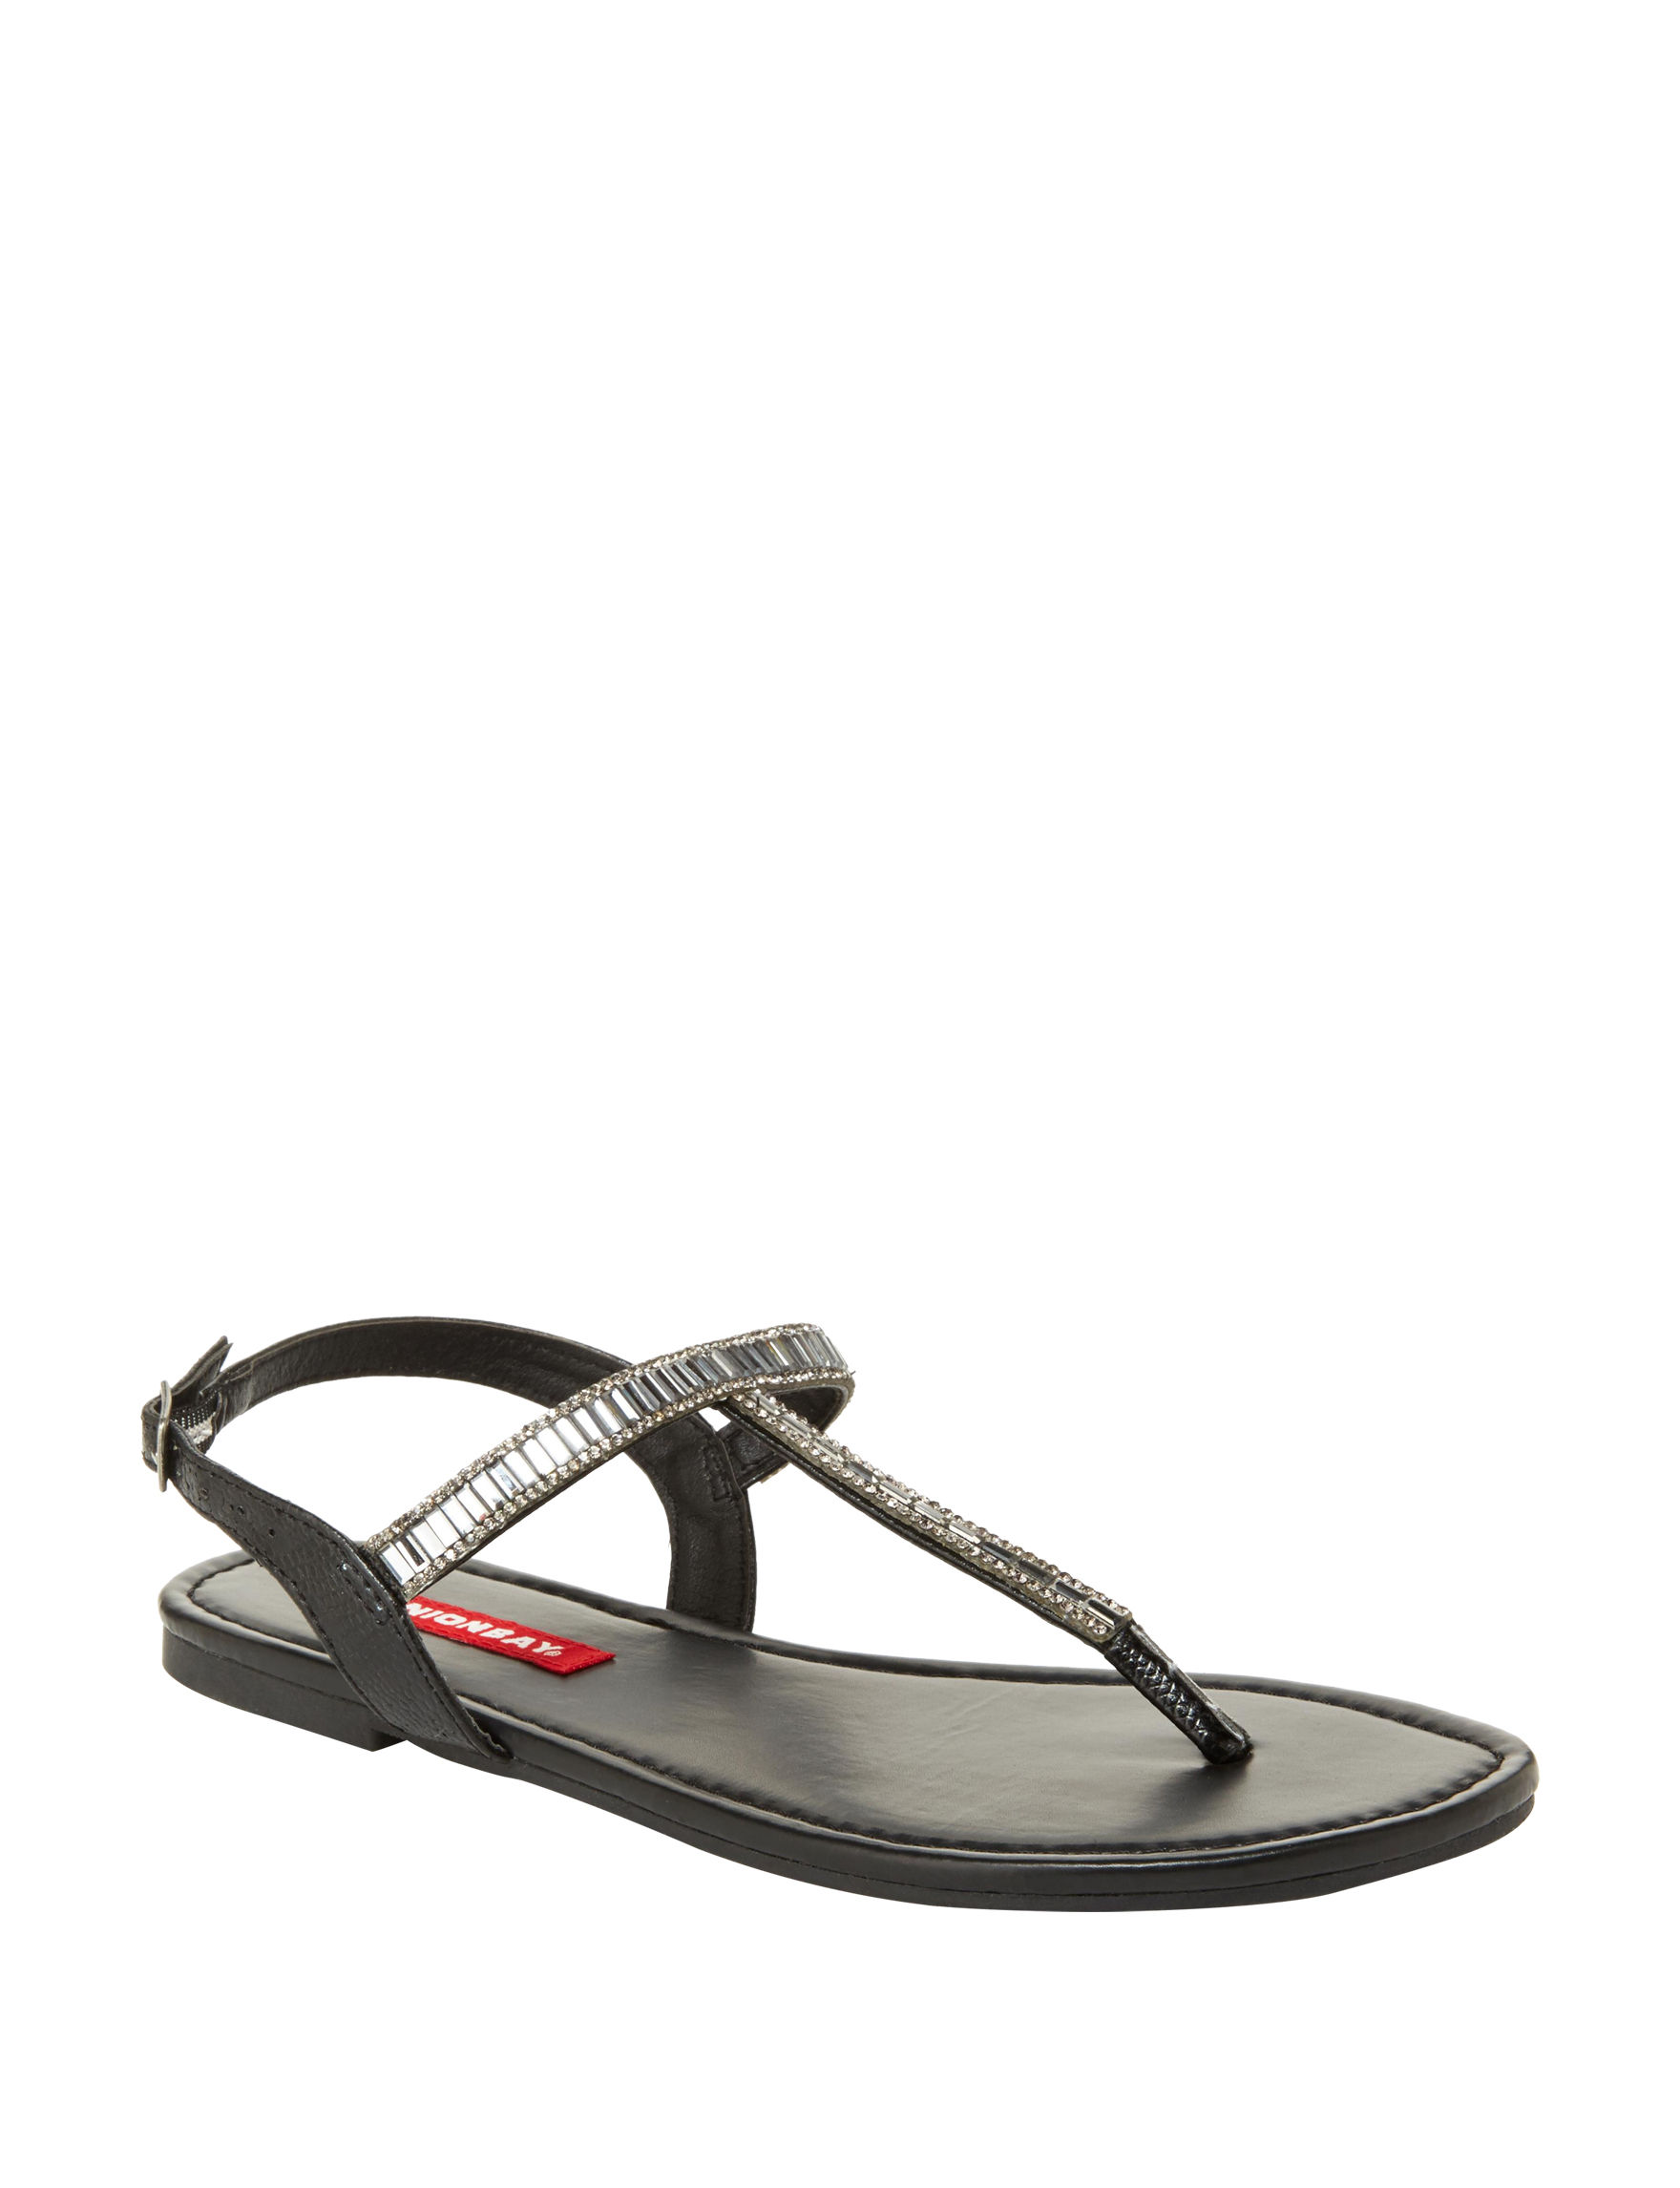 Unionbay Black Flat Sandals